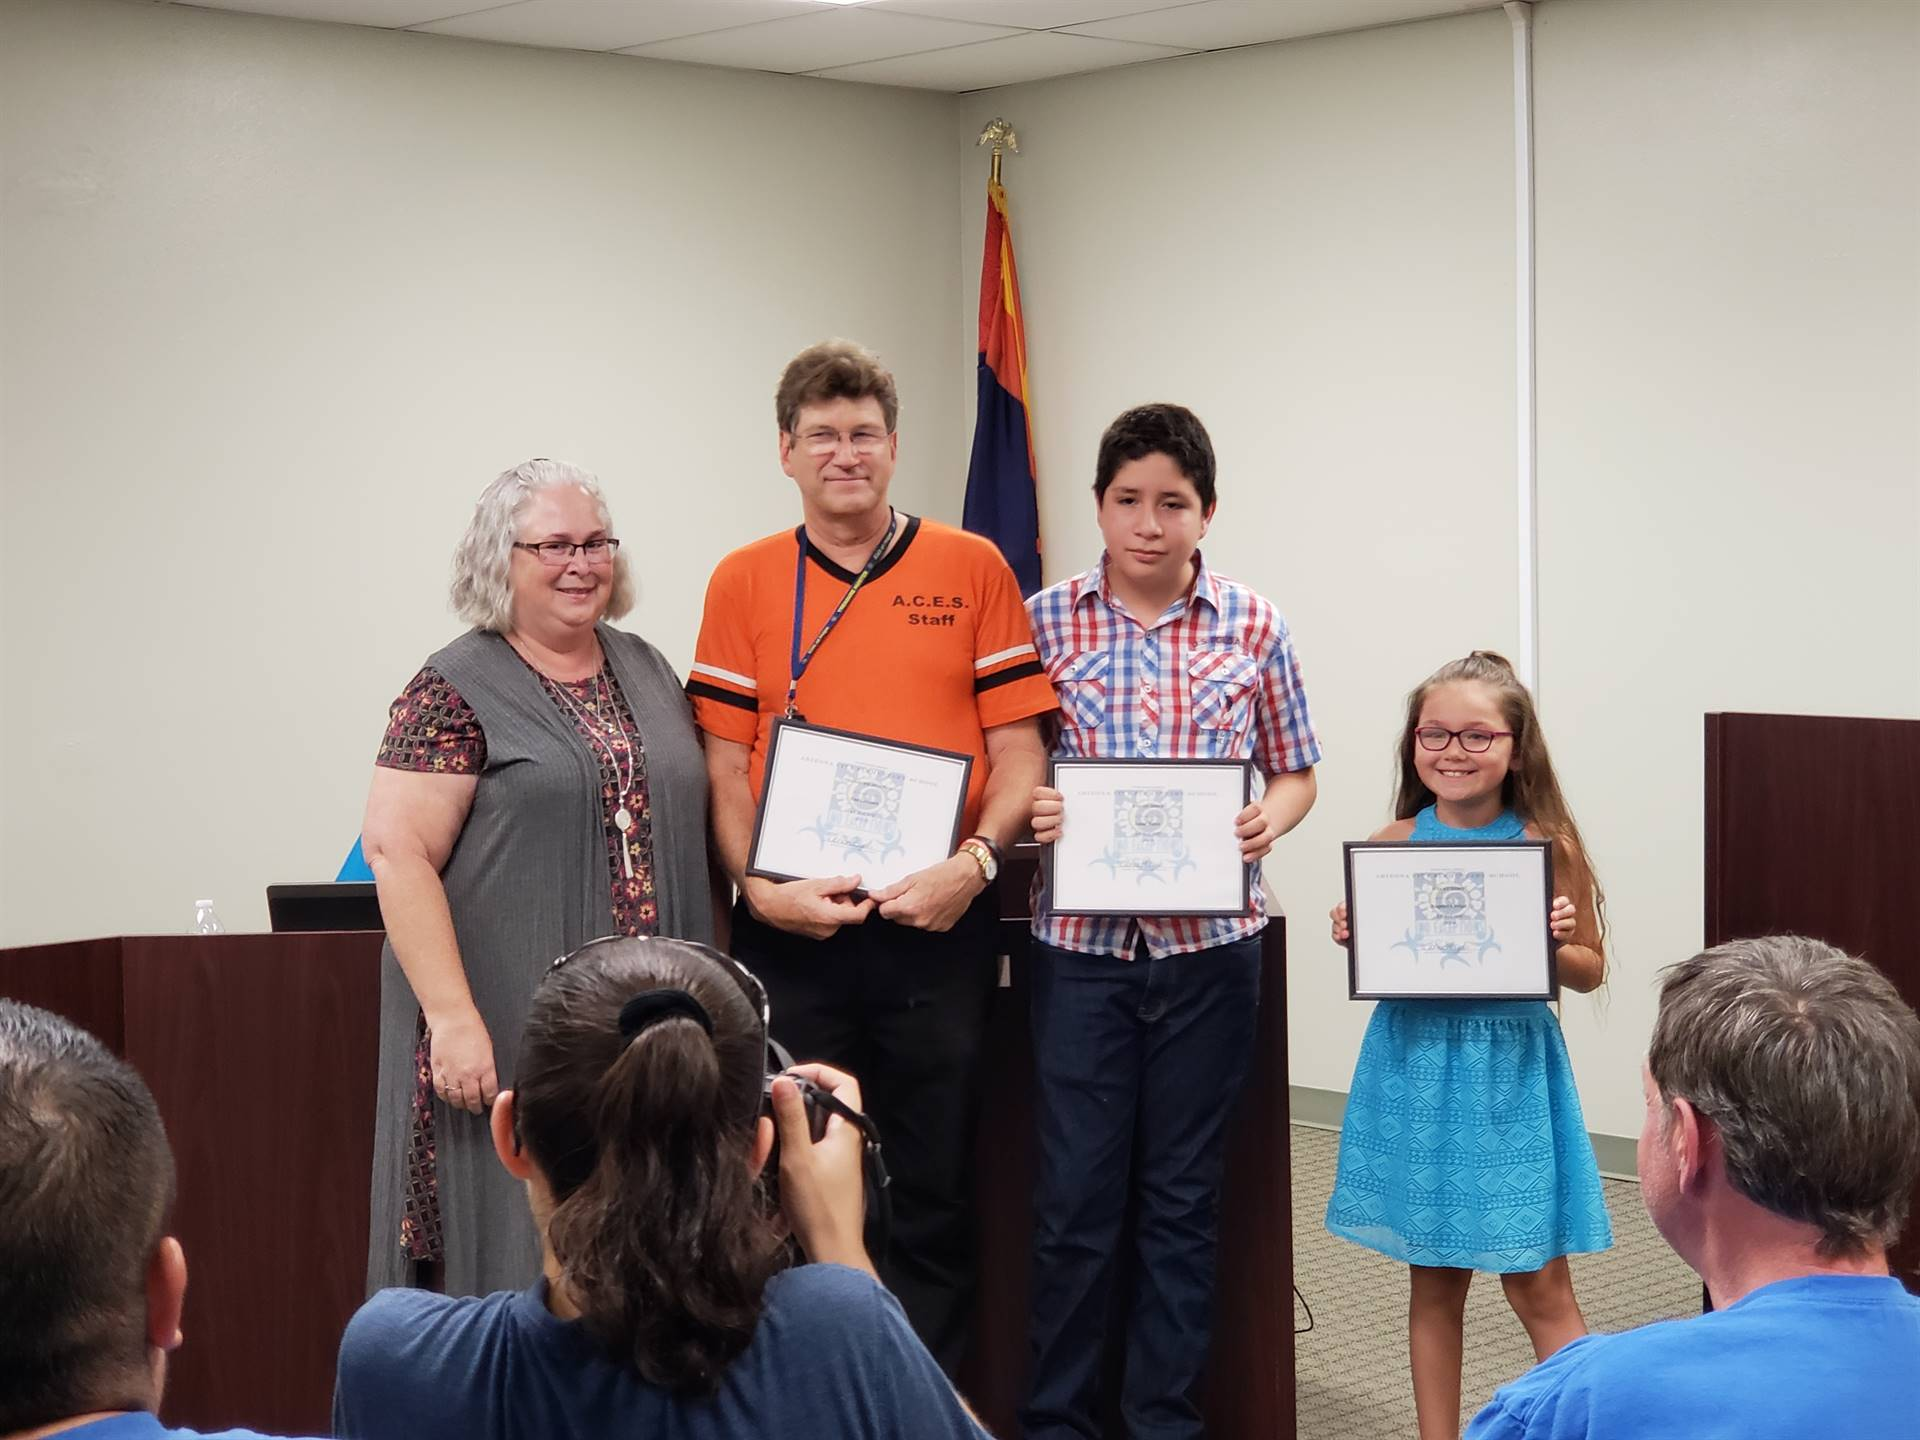 August ACE of the month and August Kids at Hope